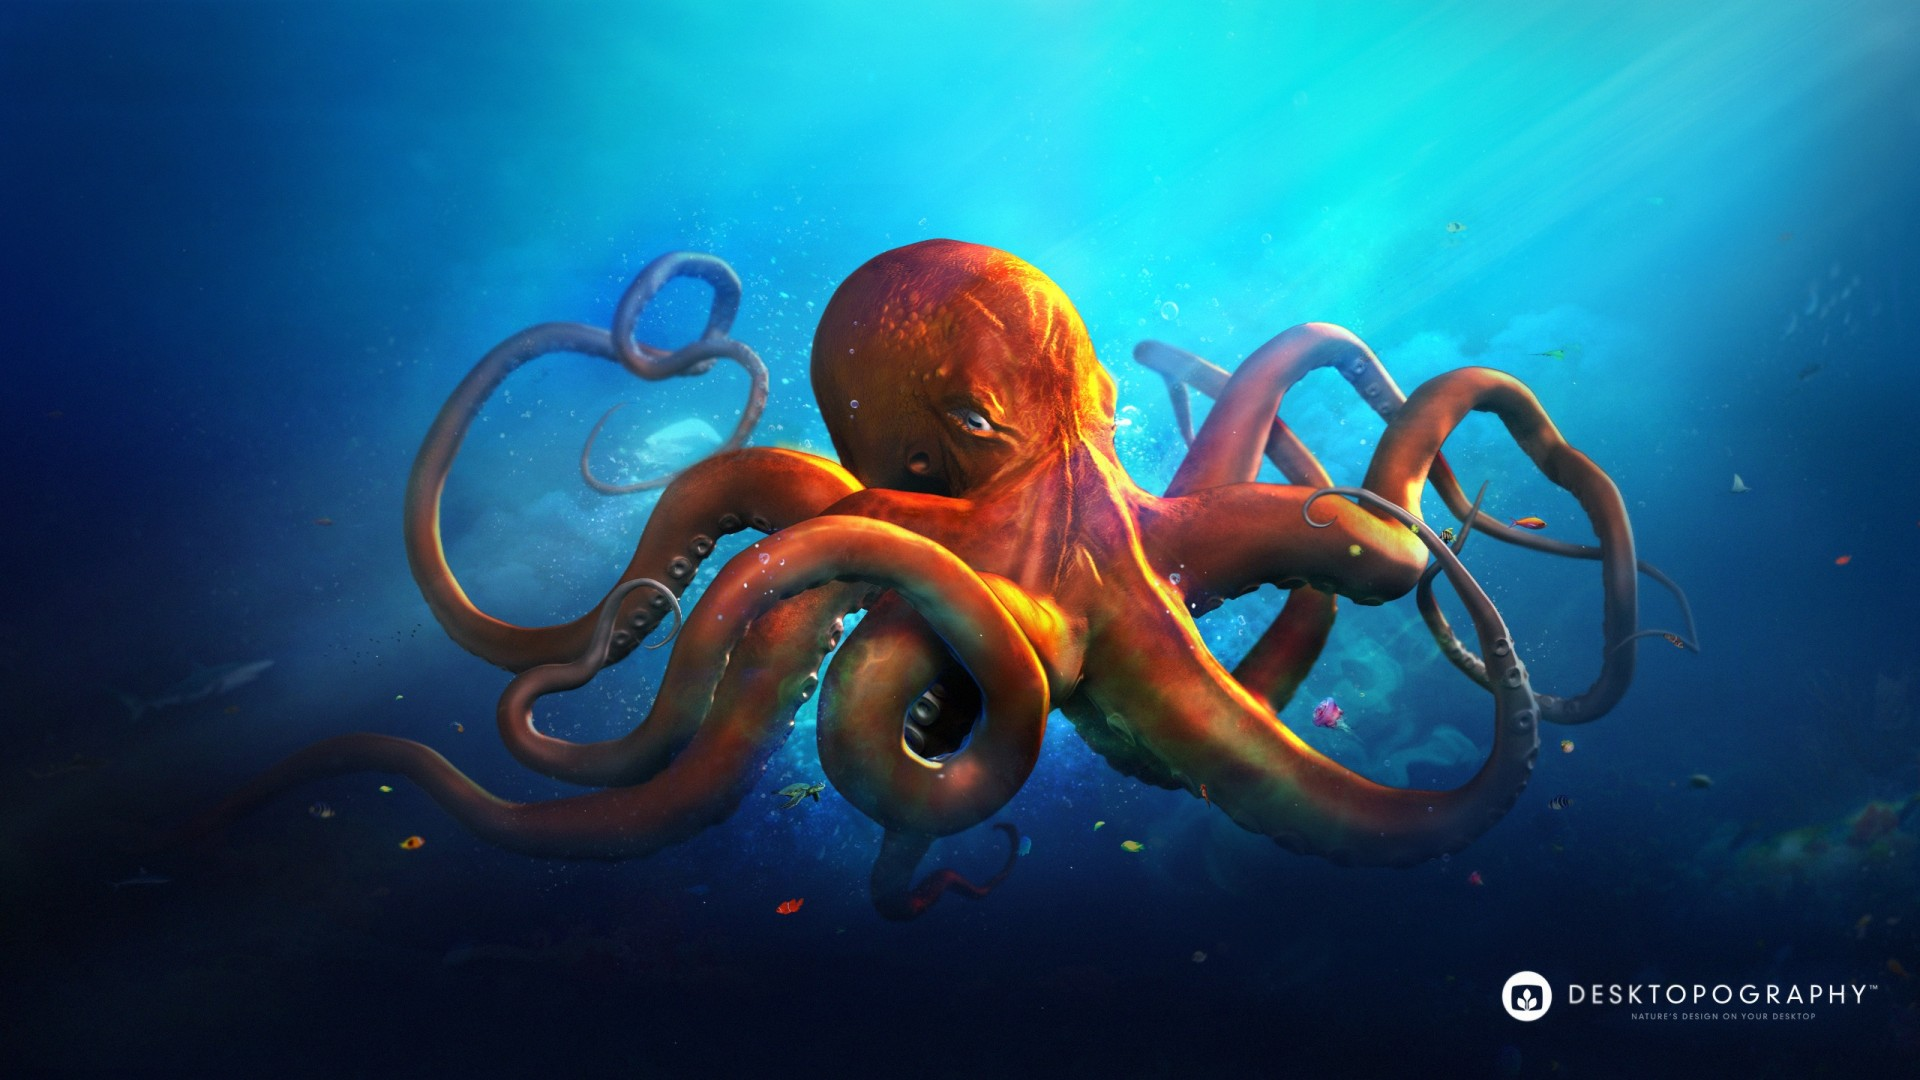 Ultra Hd 4k Wallpapers For Iphone Slouching Octopus Wallpapers Hd Wallpapers Id 13917